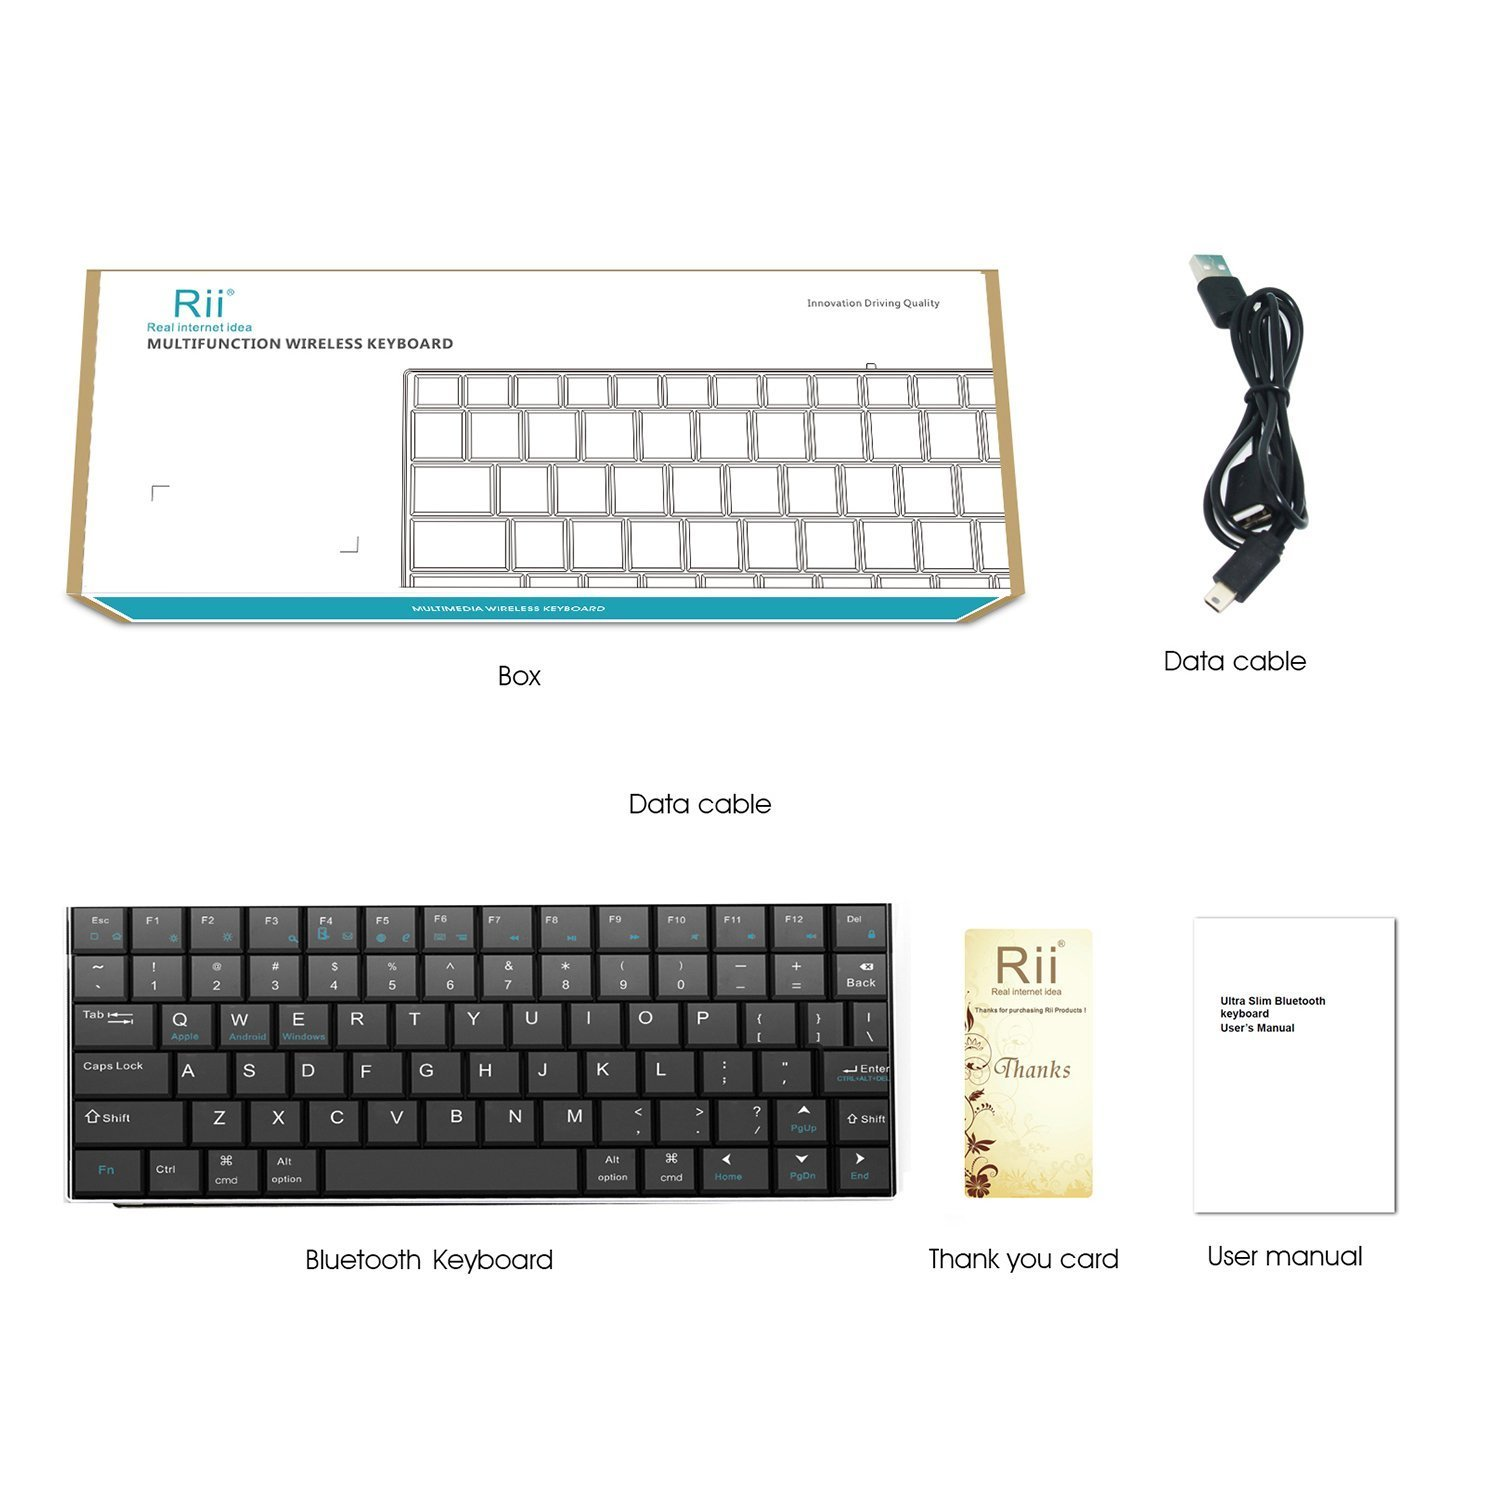 Rii i9 Bluetooth 3.0 Ultra Slim Wireless Rechargable Keyboard With Stainless Stand Cover For iOS/Android and Windows PC/Laptop/Notebook/MacBook/Samsung Galaxy Tablet/iPhone/iPad/Microsoft Surface by Rii (Image #6)